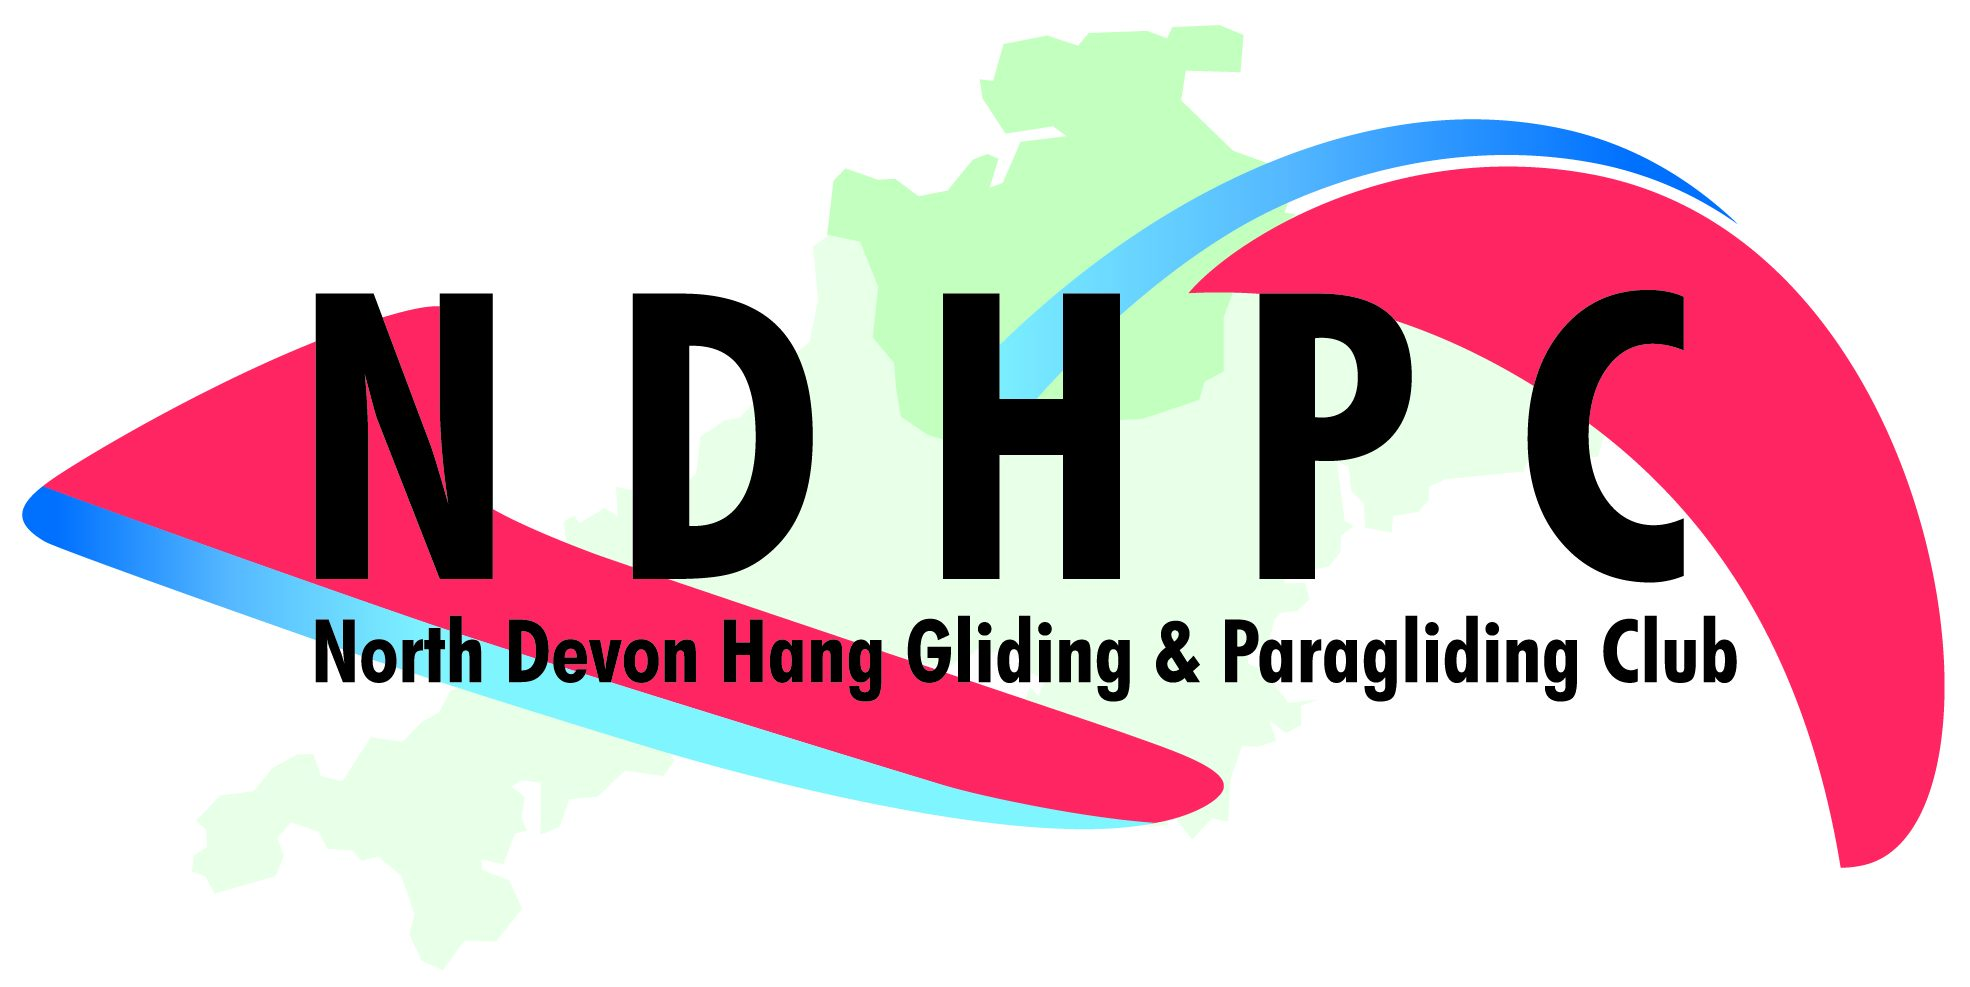 North Devon Hang Gliding and Paragliding Club